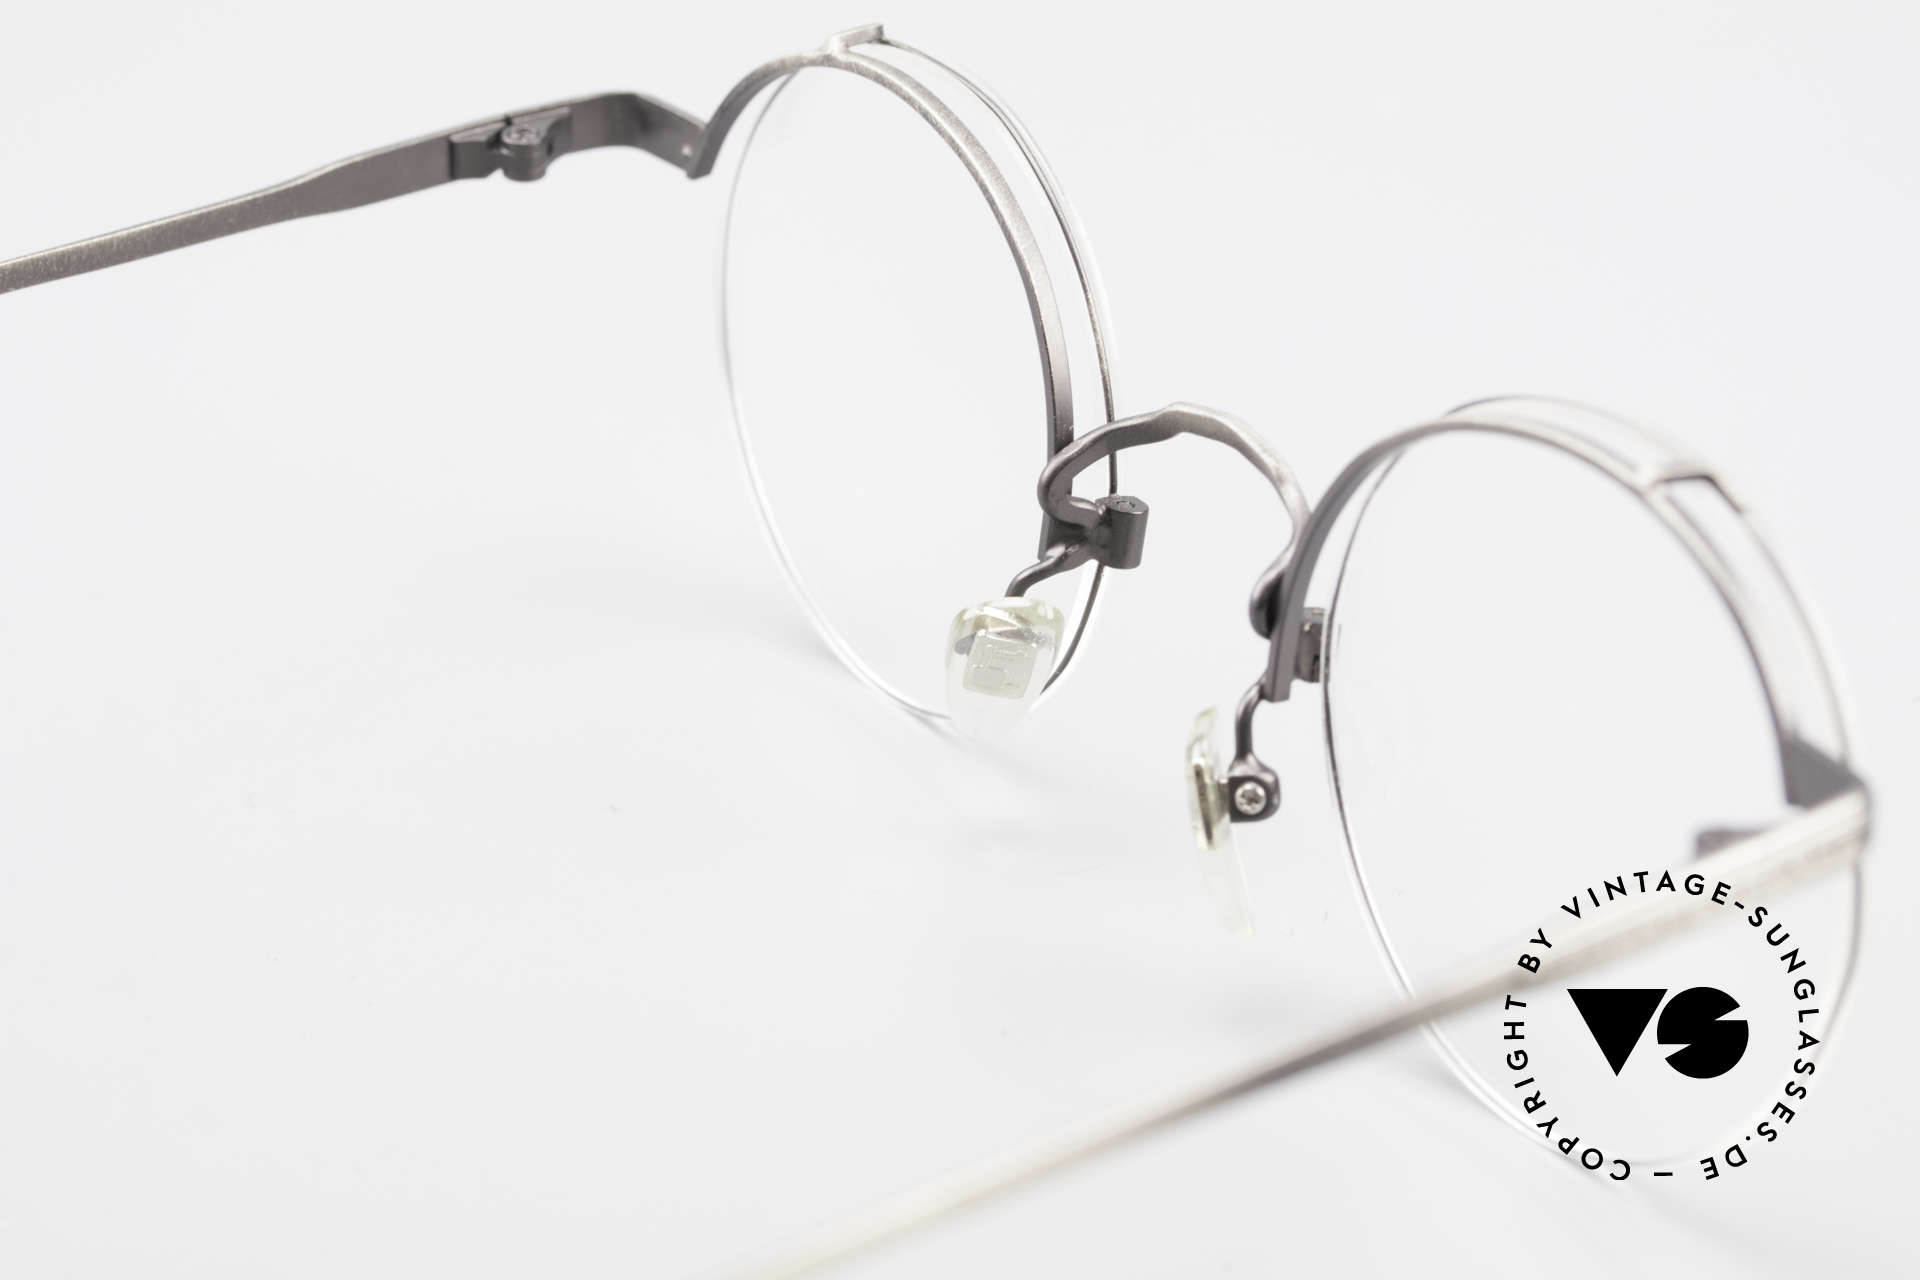 Bada BL9 Analog Oliver Peoples Eyevan, NO RETRO fashion-specs, but a unique old ORIGINAL, Made for Men and Women